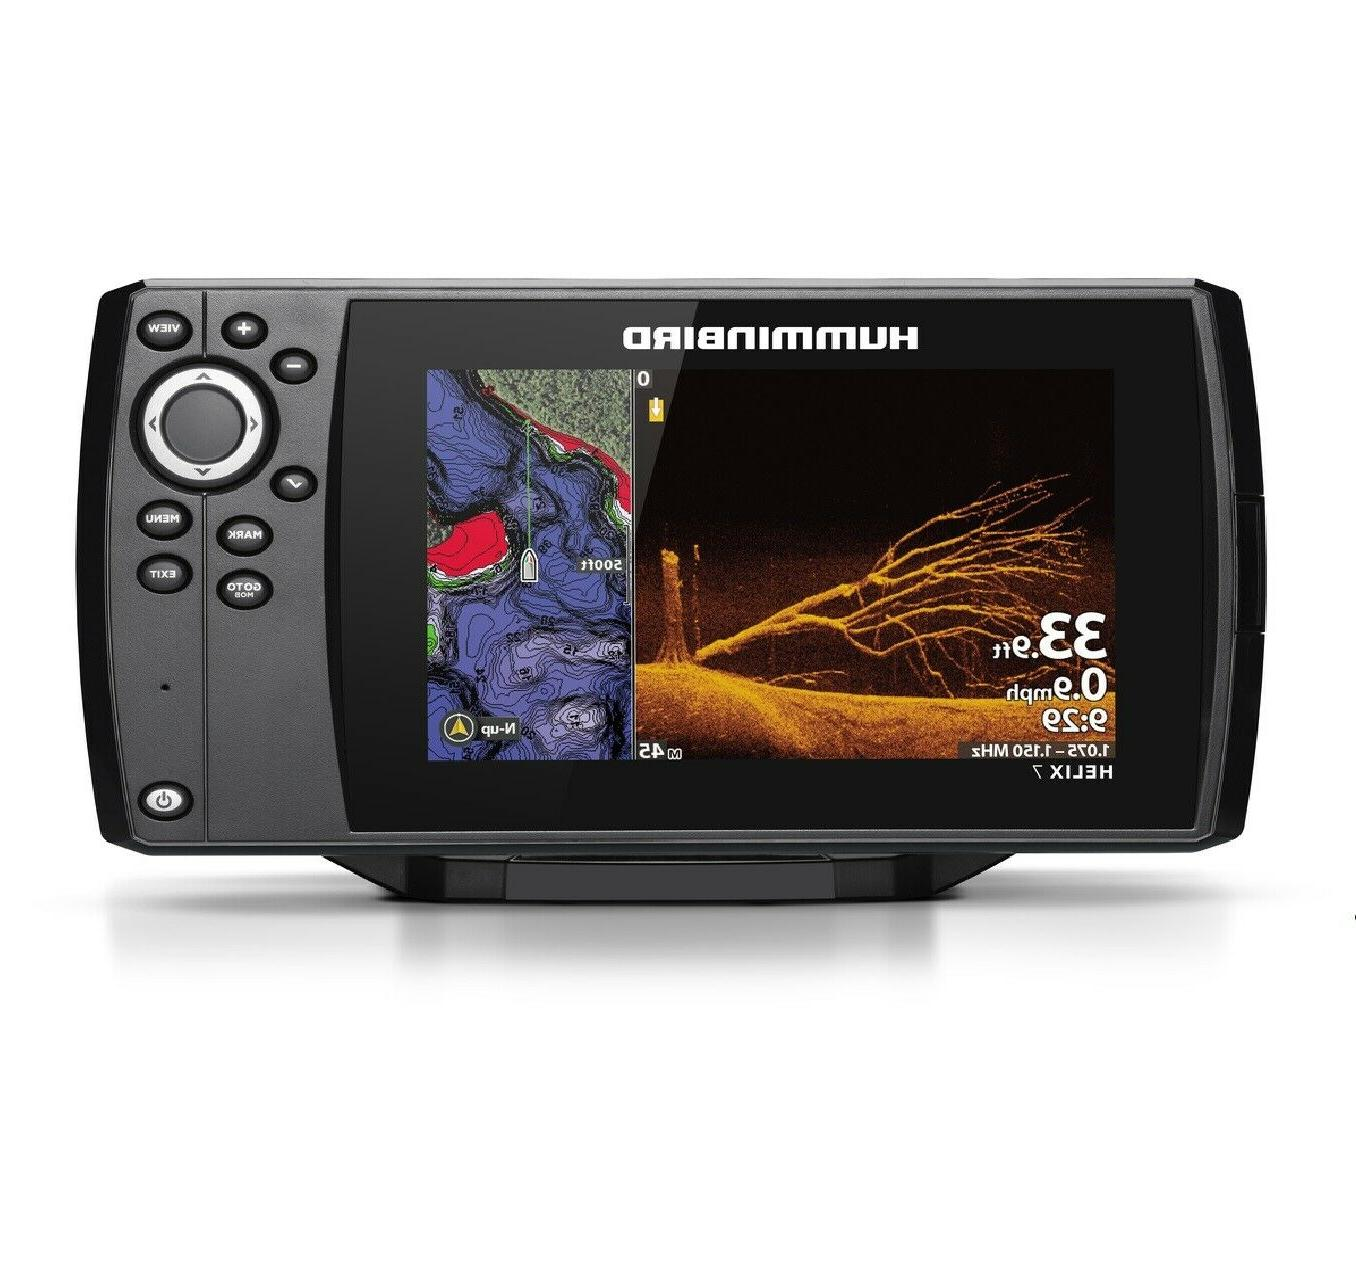 Humminbird CHIRP MDI Down Image Finder